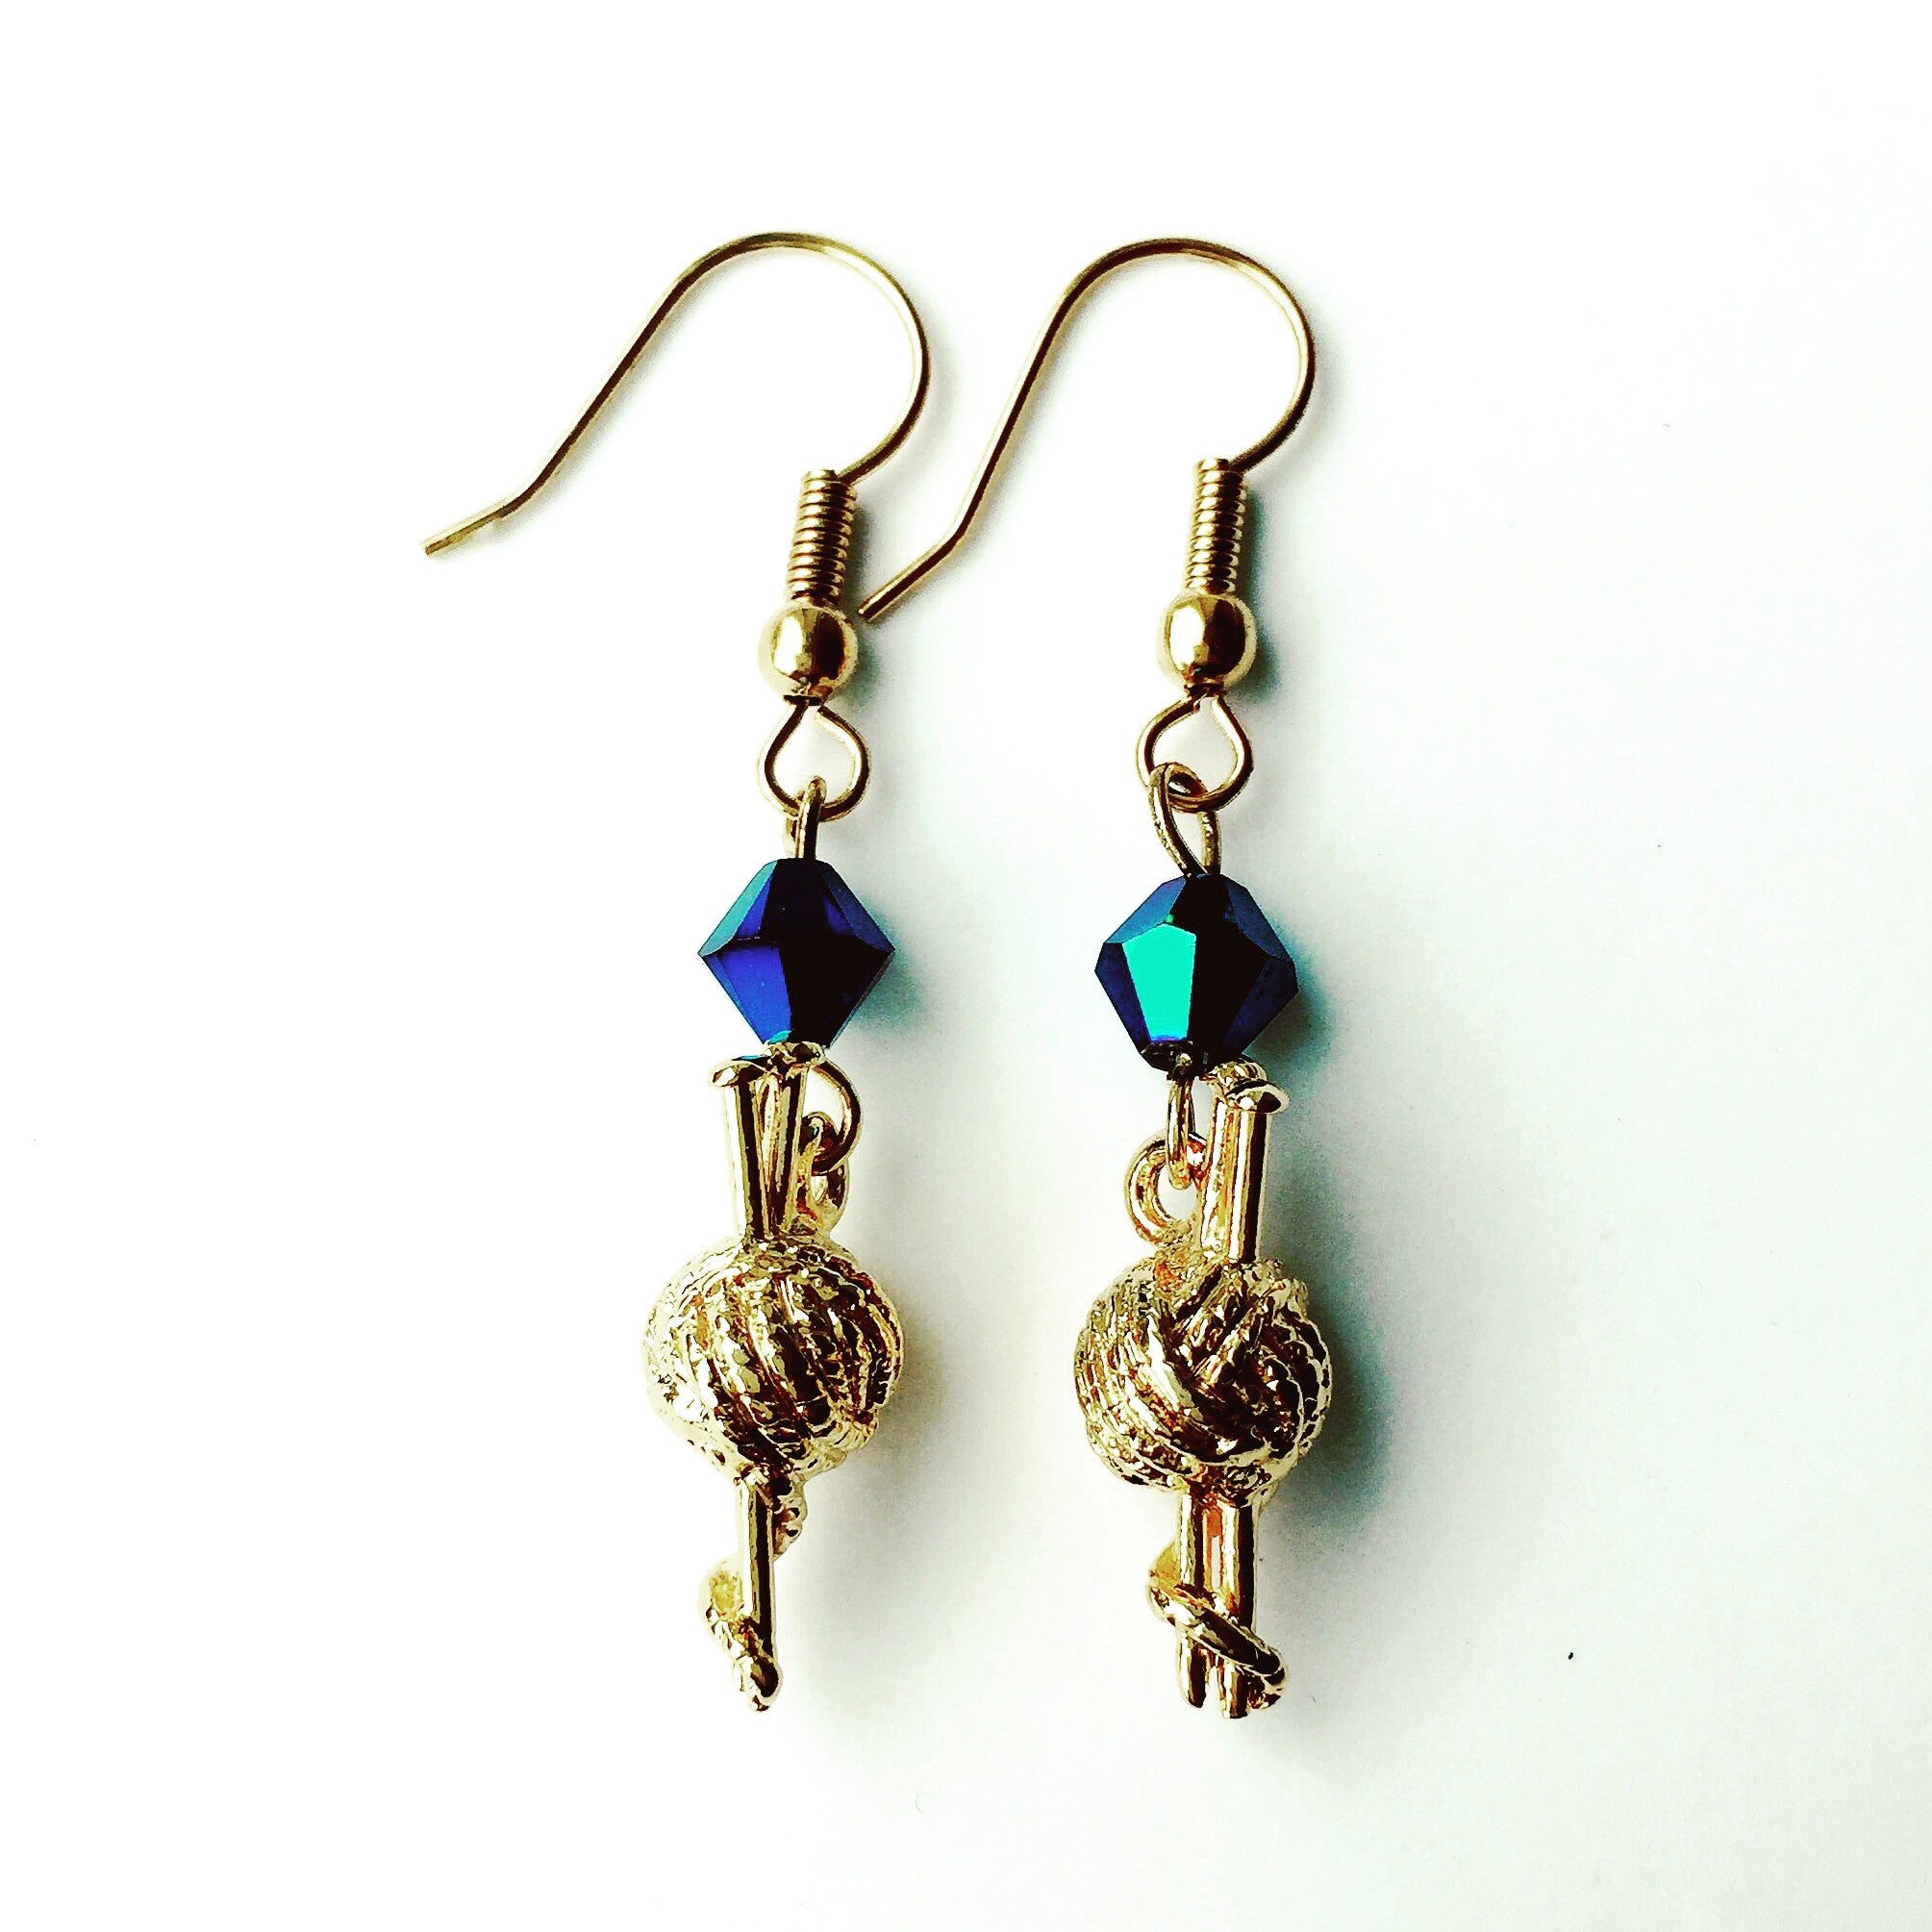 ____ Ball of Thread Gold Earrings with Blue Swarovski Crystals